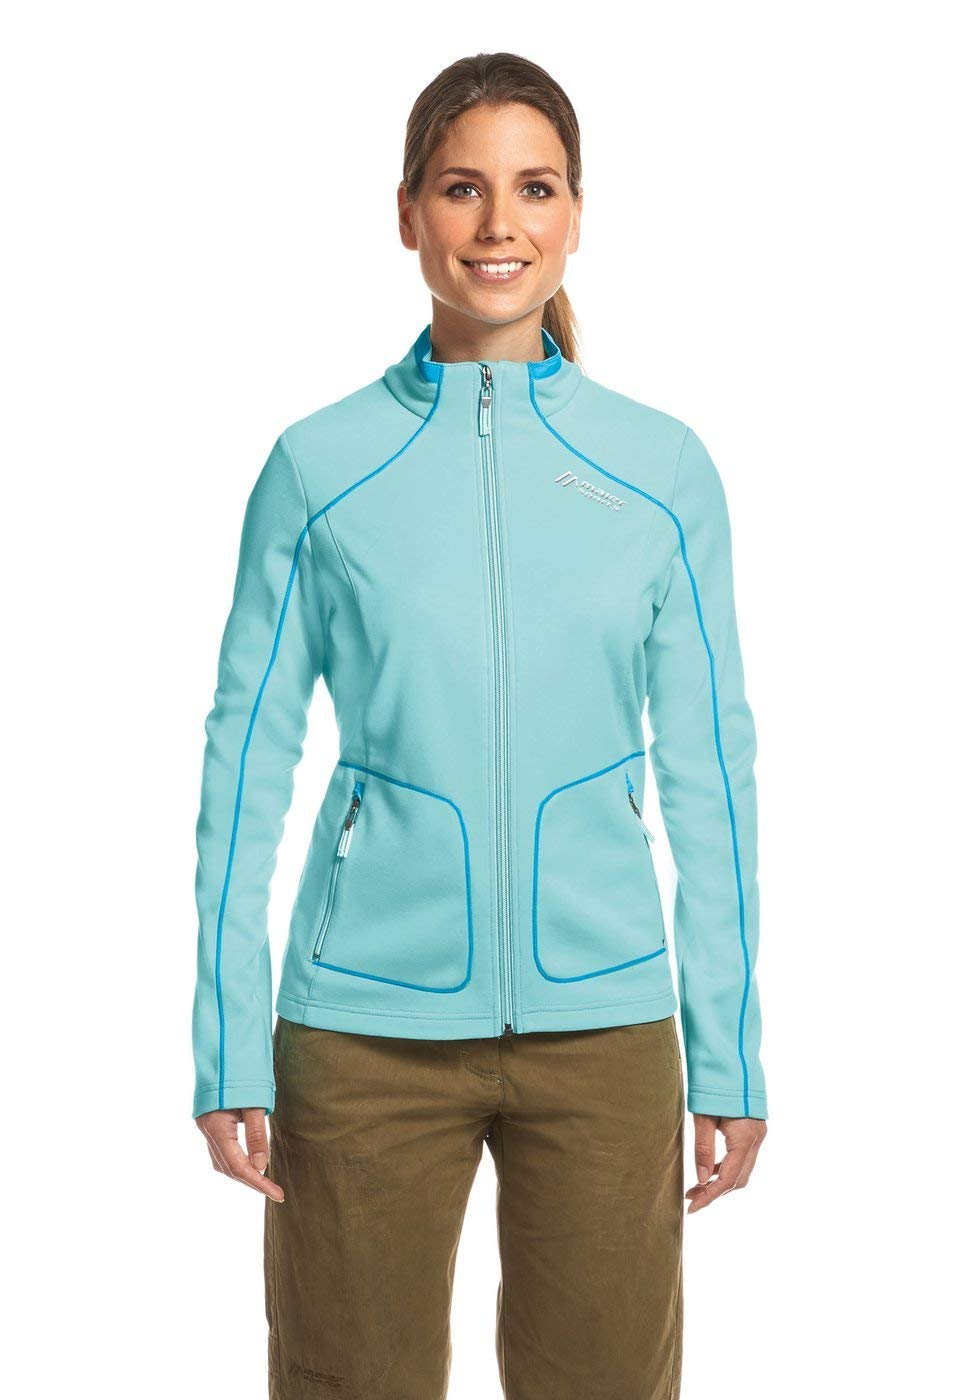 Maier Sports Damen Fleecejacke Colwyn - radiance - 44